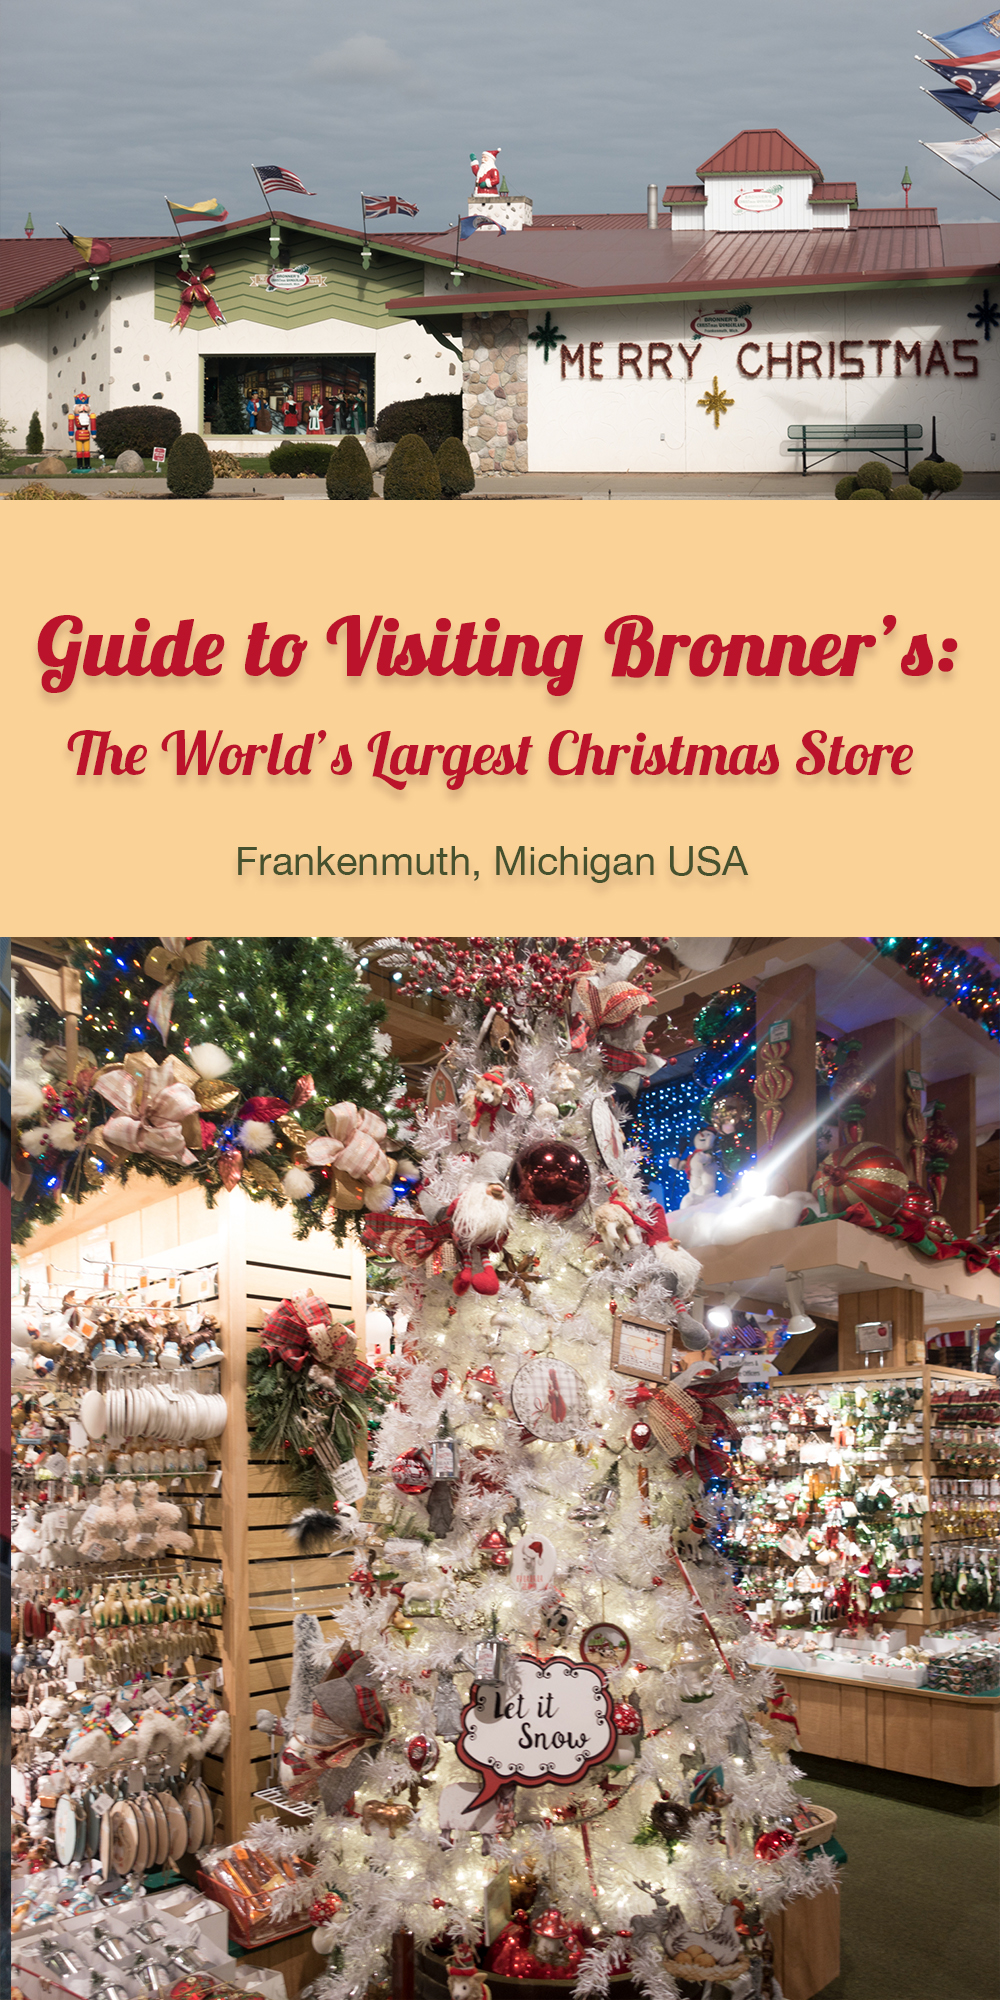 At Bronner's CHRISTmas Wonderland, you can experience Christmas year-round. This guide to visiting Bronner's will show you why you need to visit this magical place. Plus some tips for your visit! #Christmas #Holiday #Michigan #Frankenmuth #Travel #travelguide #shopping